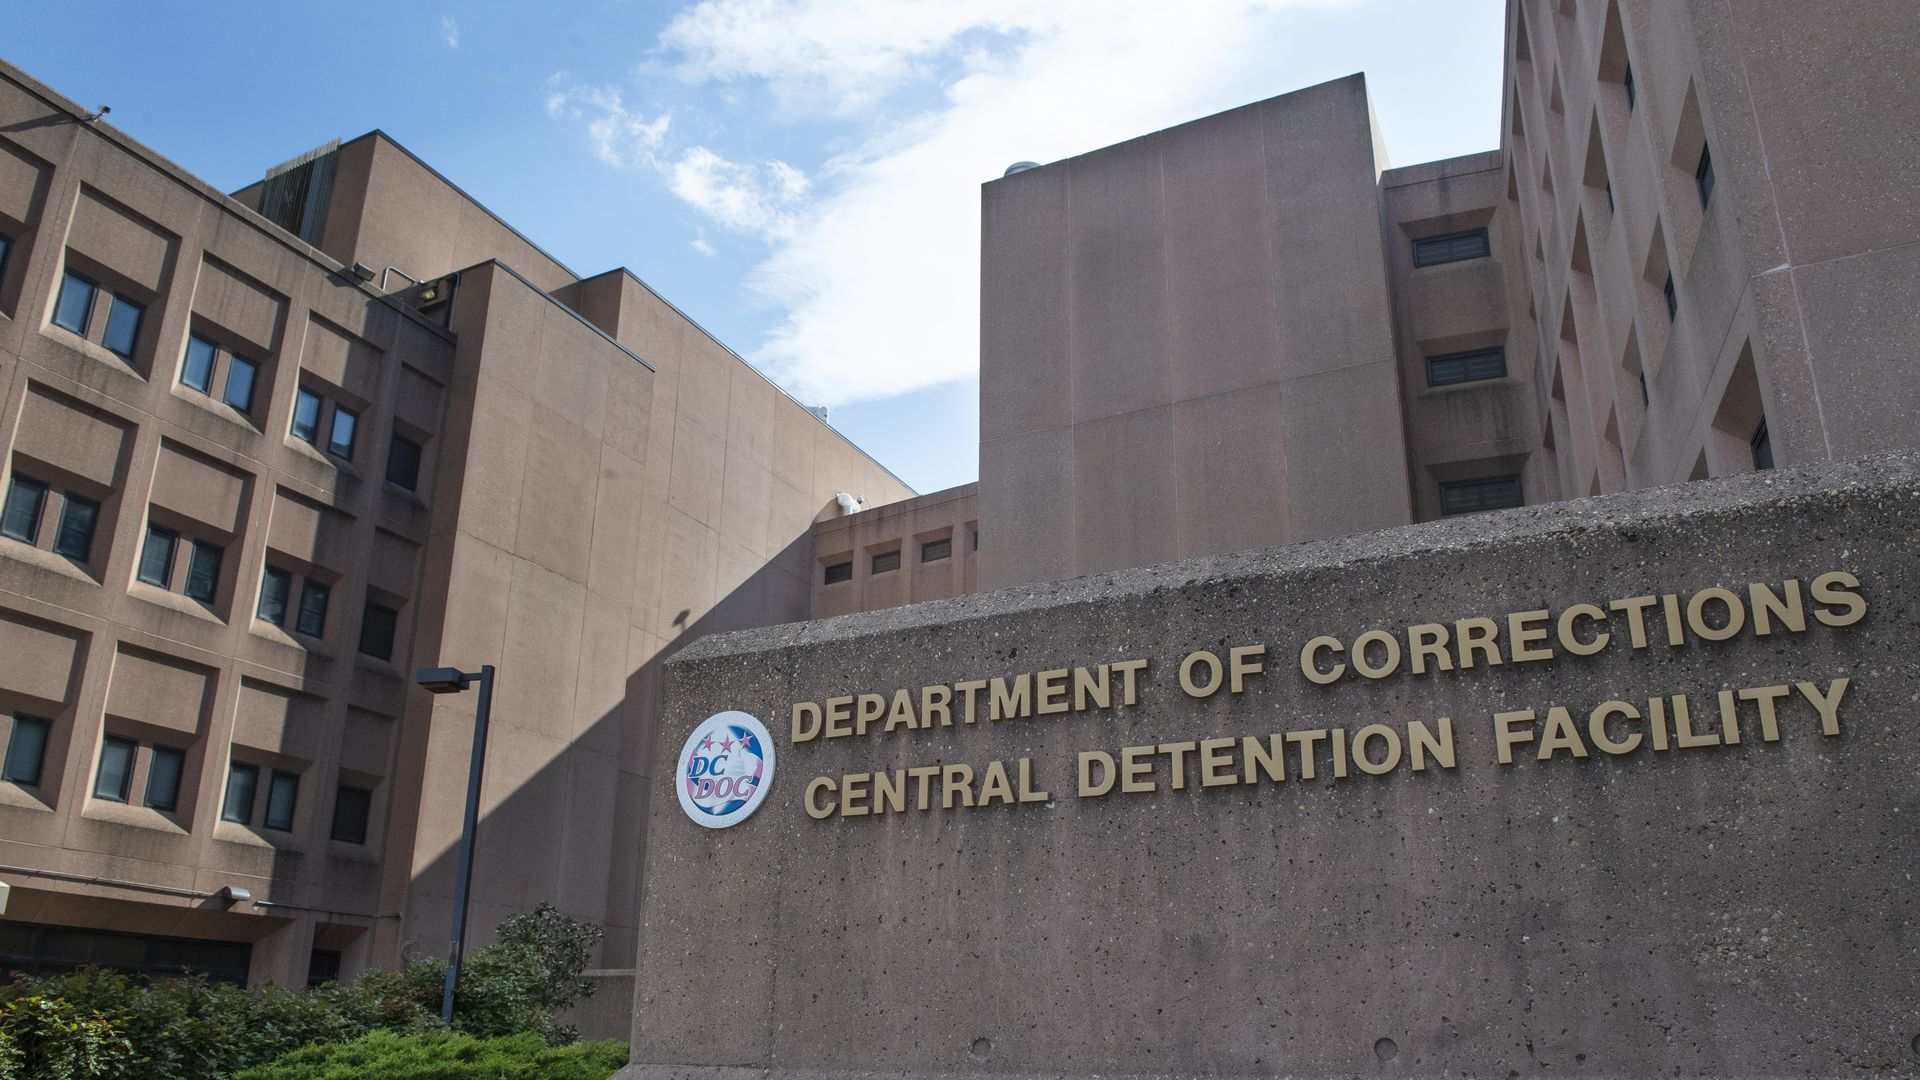 Picture of the D.C. Department of Corrections building